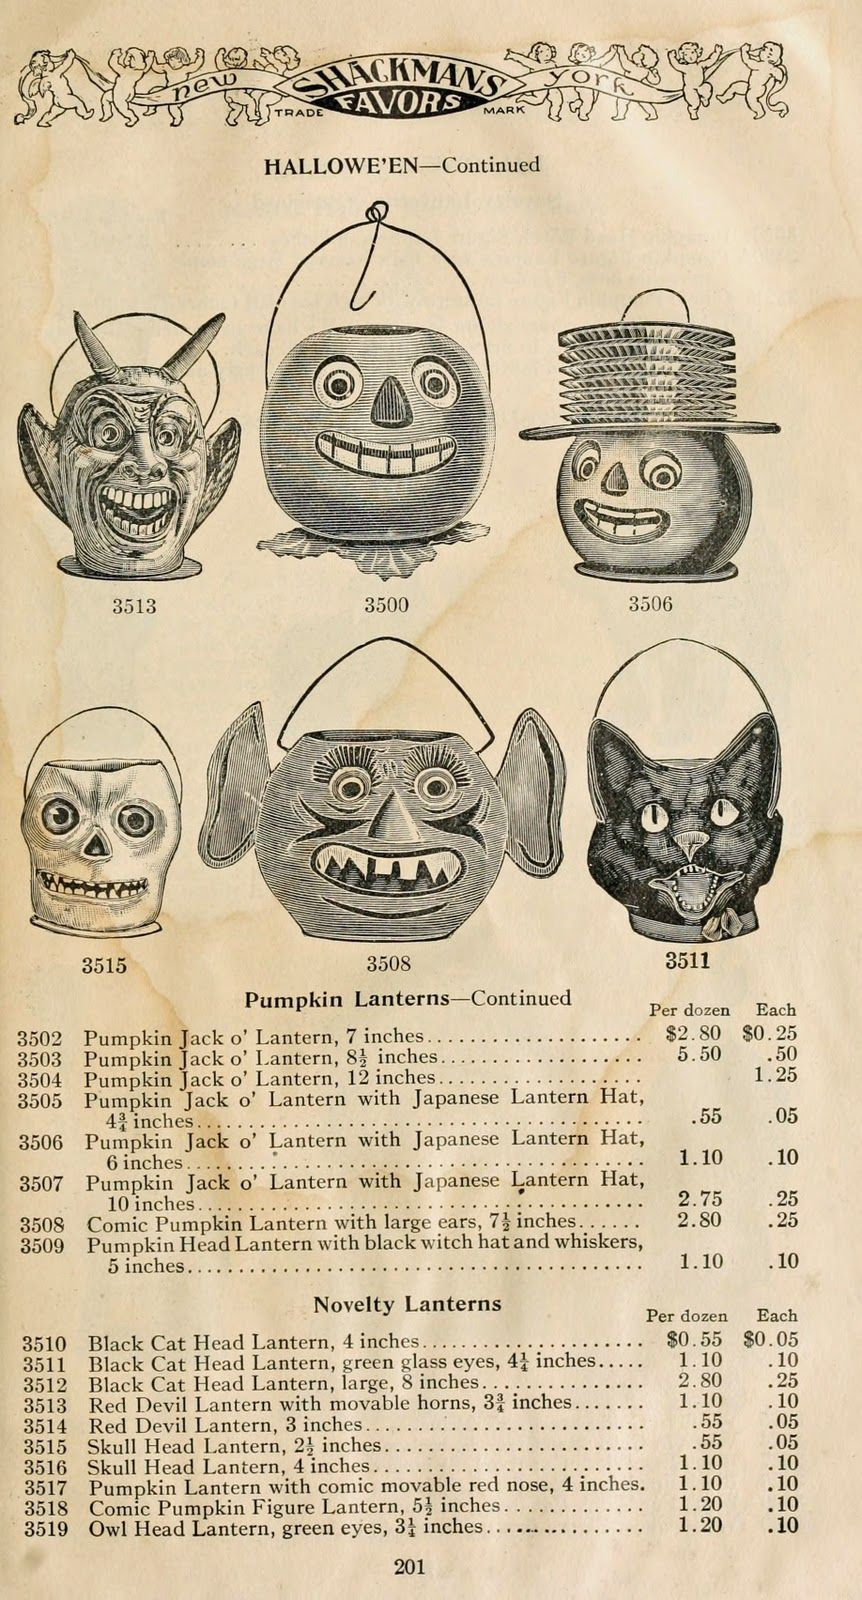 Vintage Halloween Ephemera Shackman's Favors * Catalog